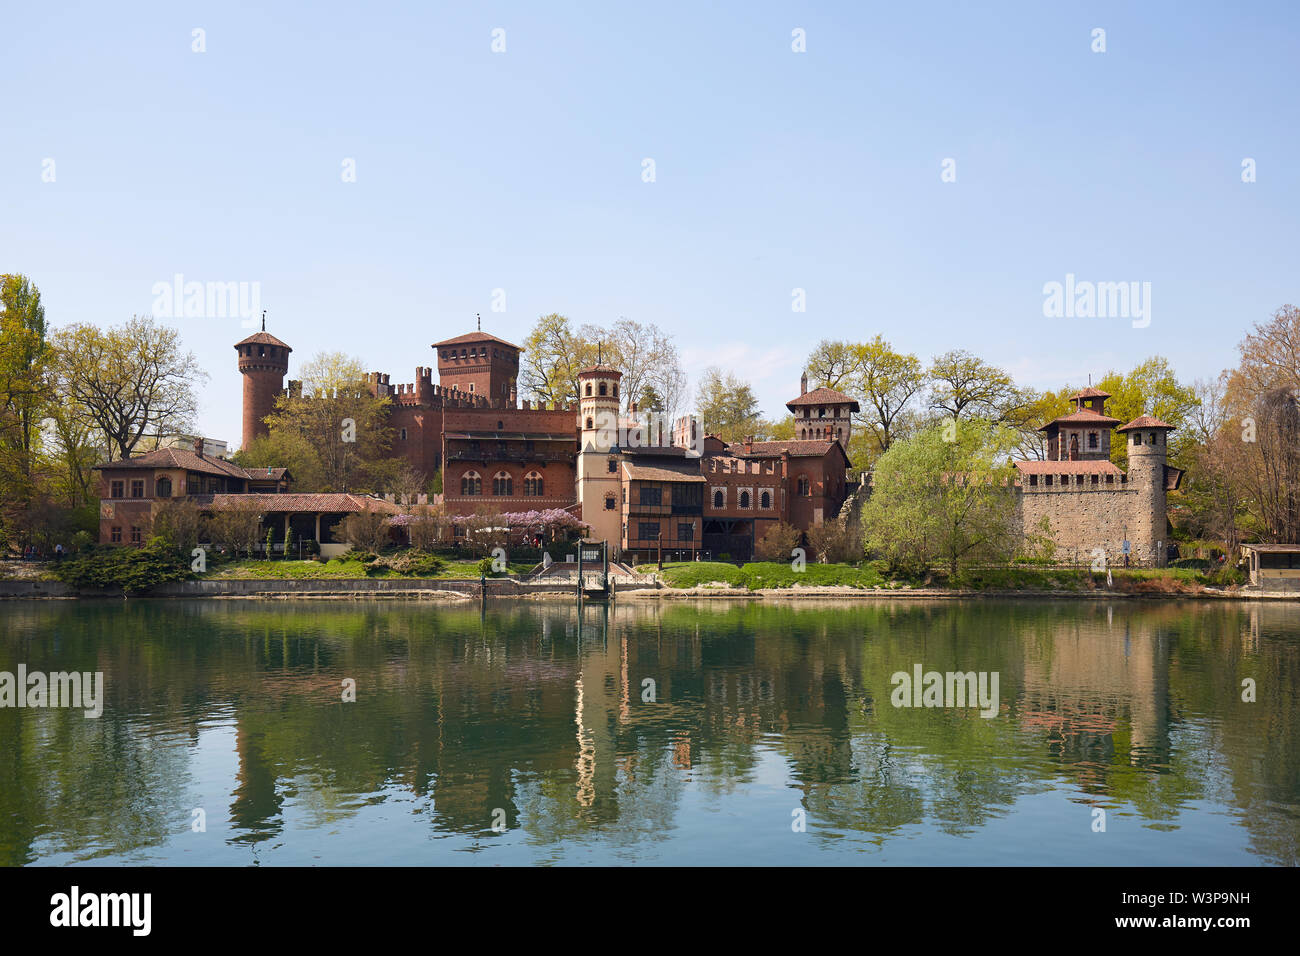 TURIN, ITALY - MARCH 31, 2019: Borgo medievale, medieval village and castle with Po river in a sunny spring day, clear blue sky in Piedmont, Turin, It Stock Photo